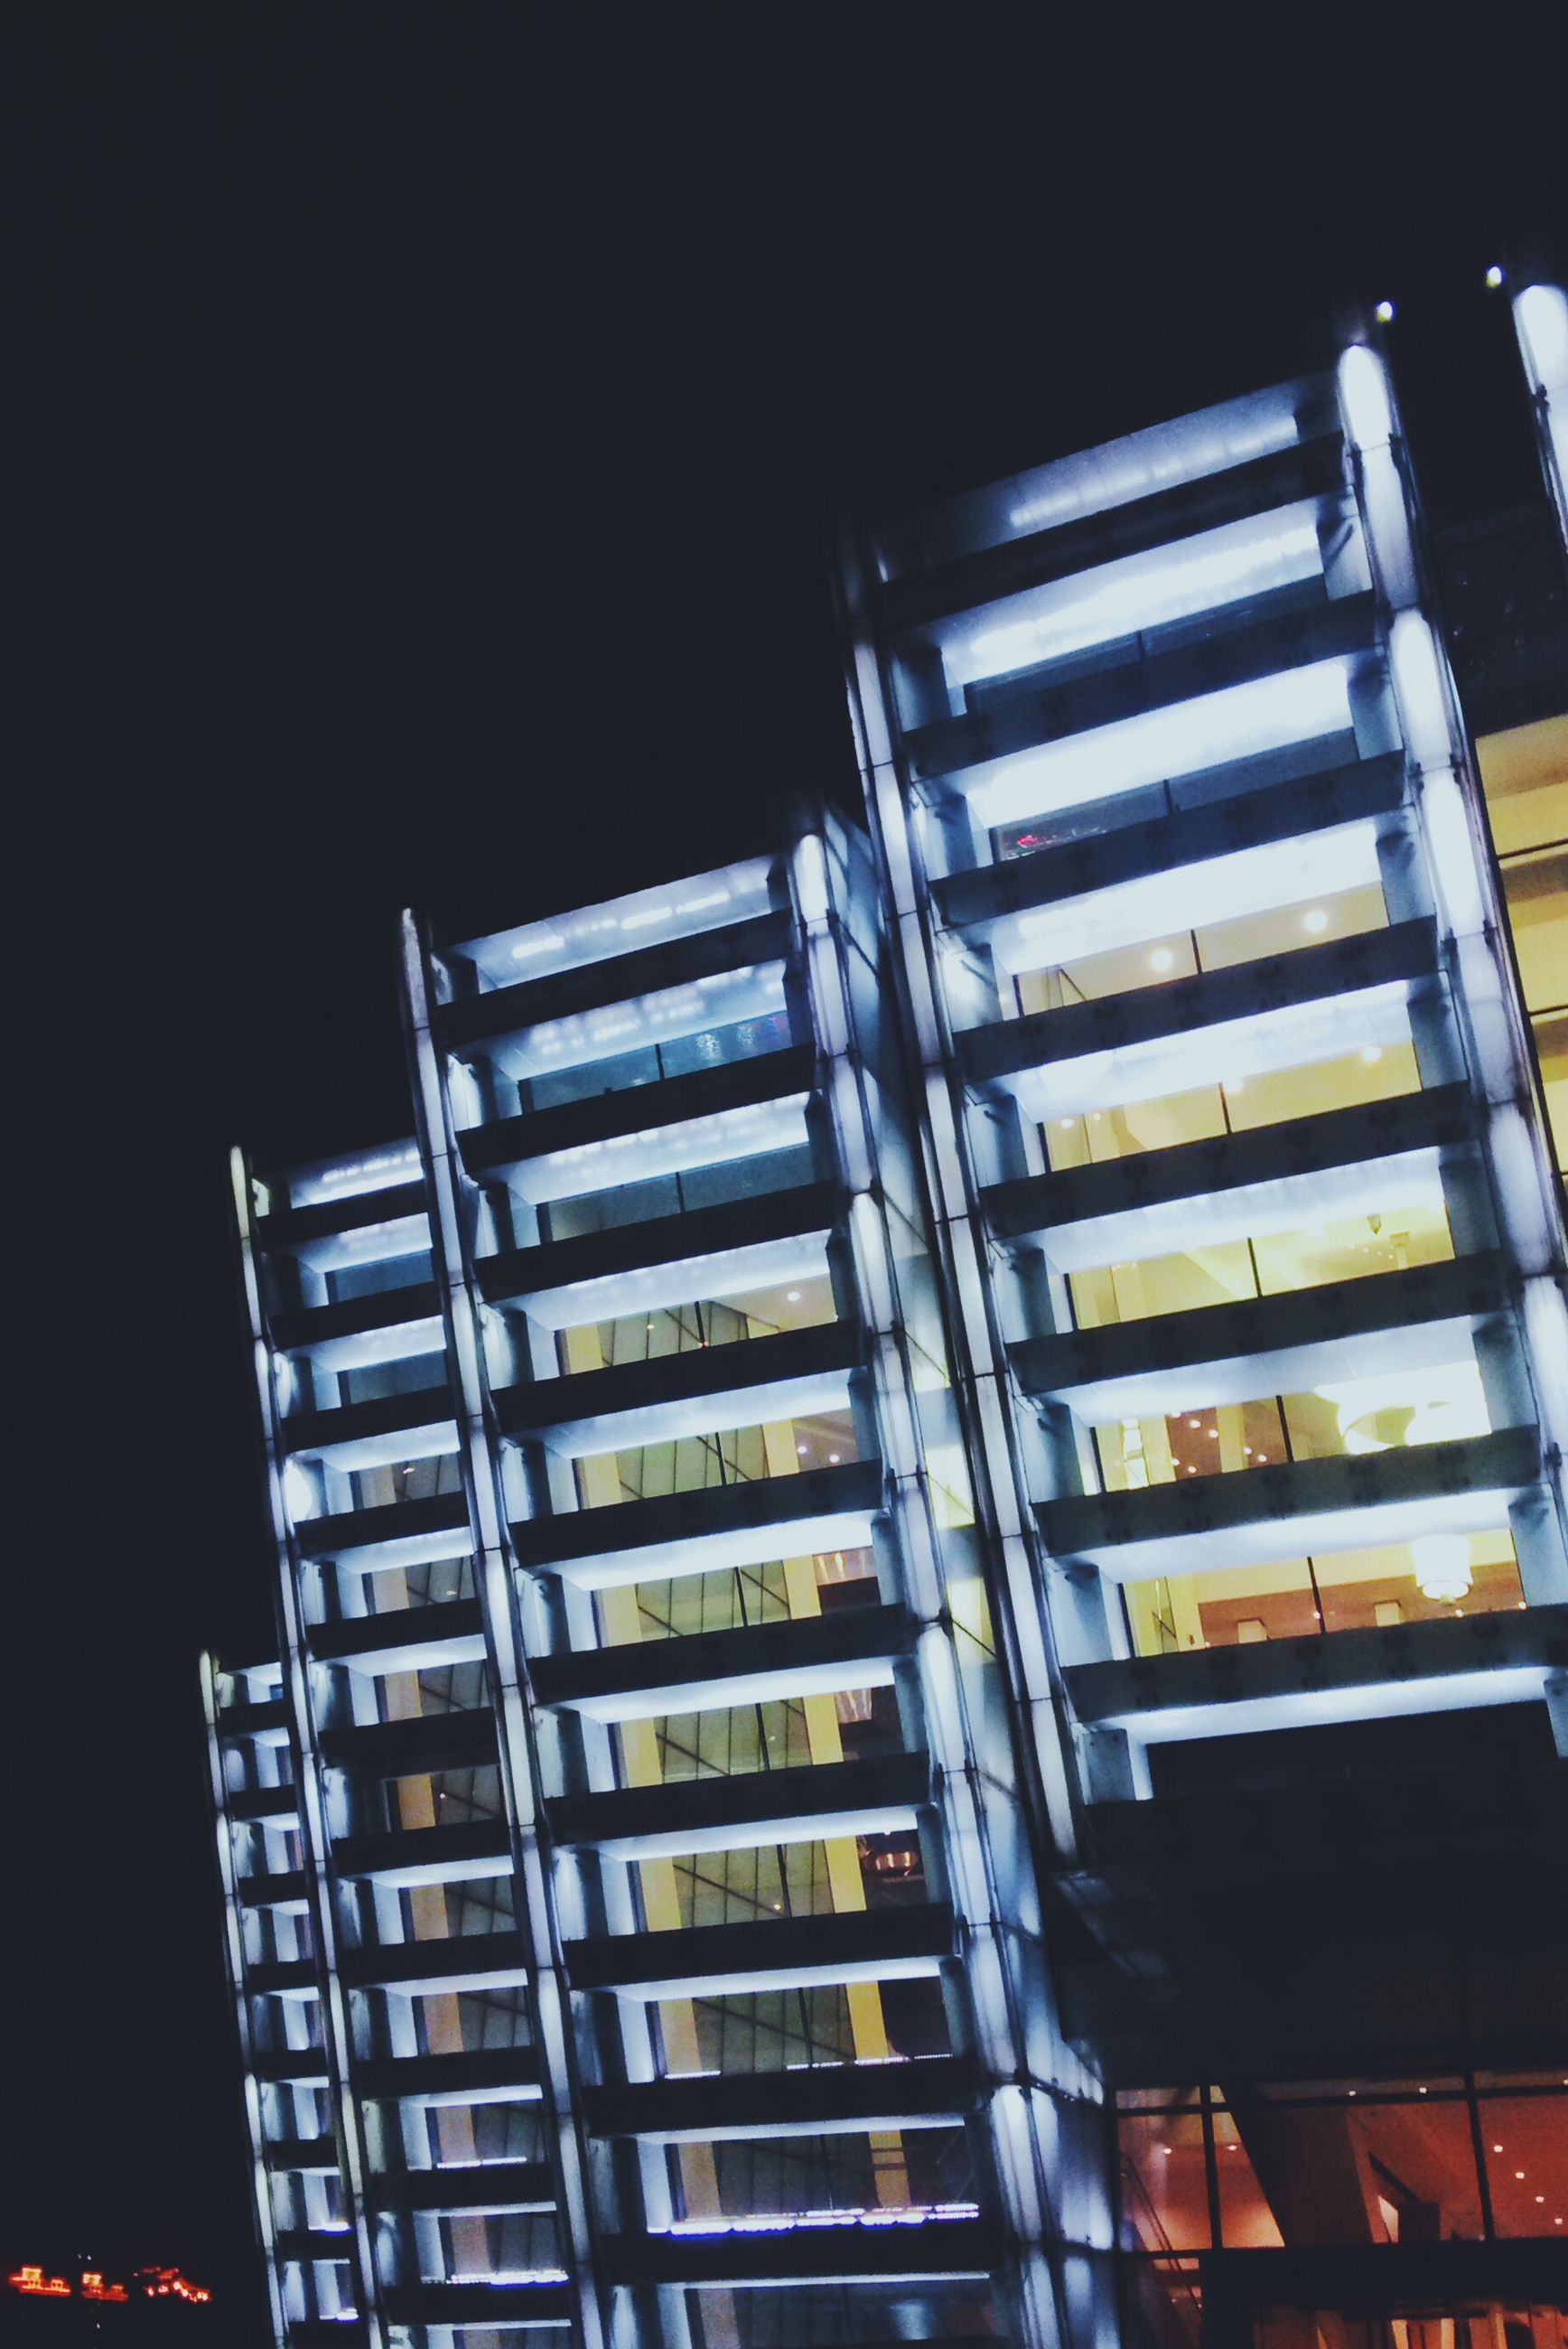 architecture, low angle view, building exterior, built structure, night, illuminated, building, window, city, no people, residential building, residential structure, modern, outdoors, pattern, sky, glass - material, clear sky, lighting equipment, office building